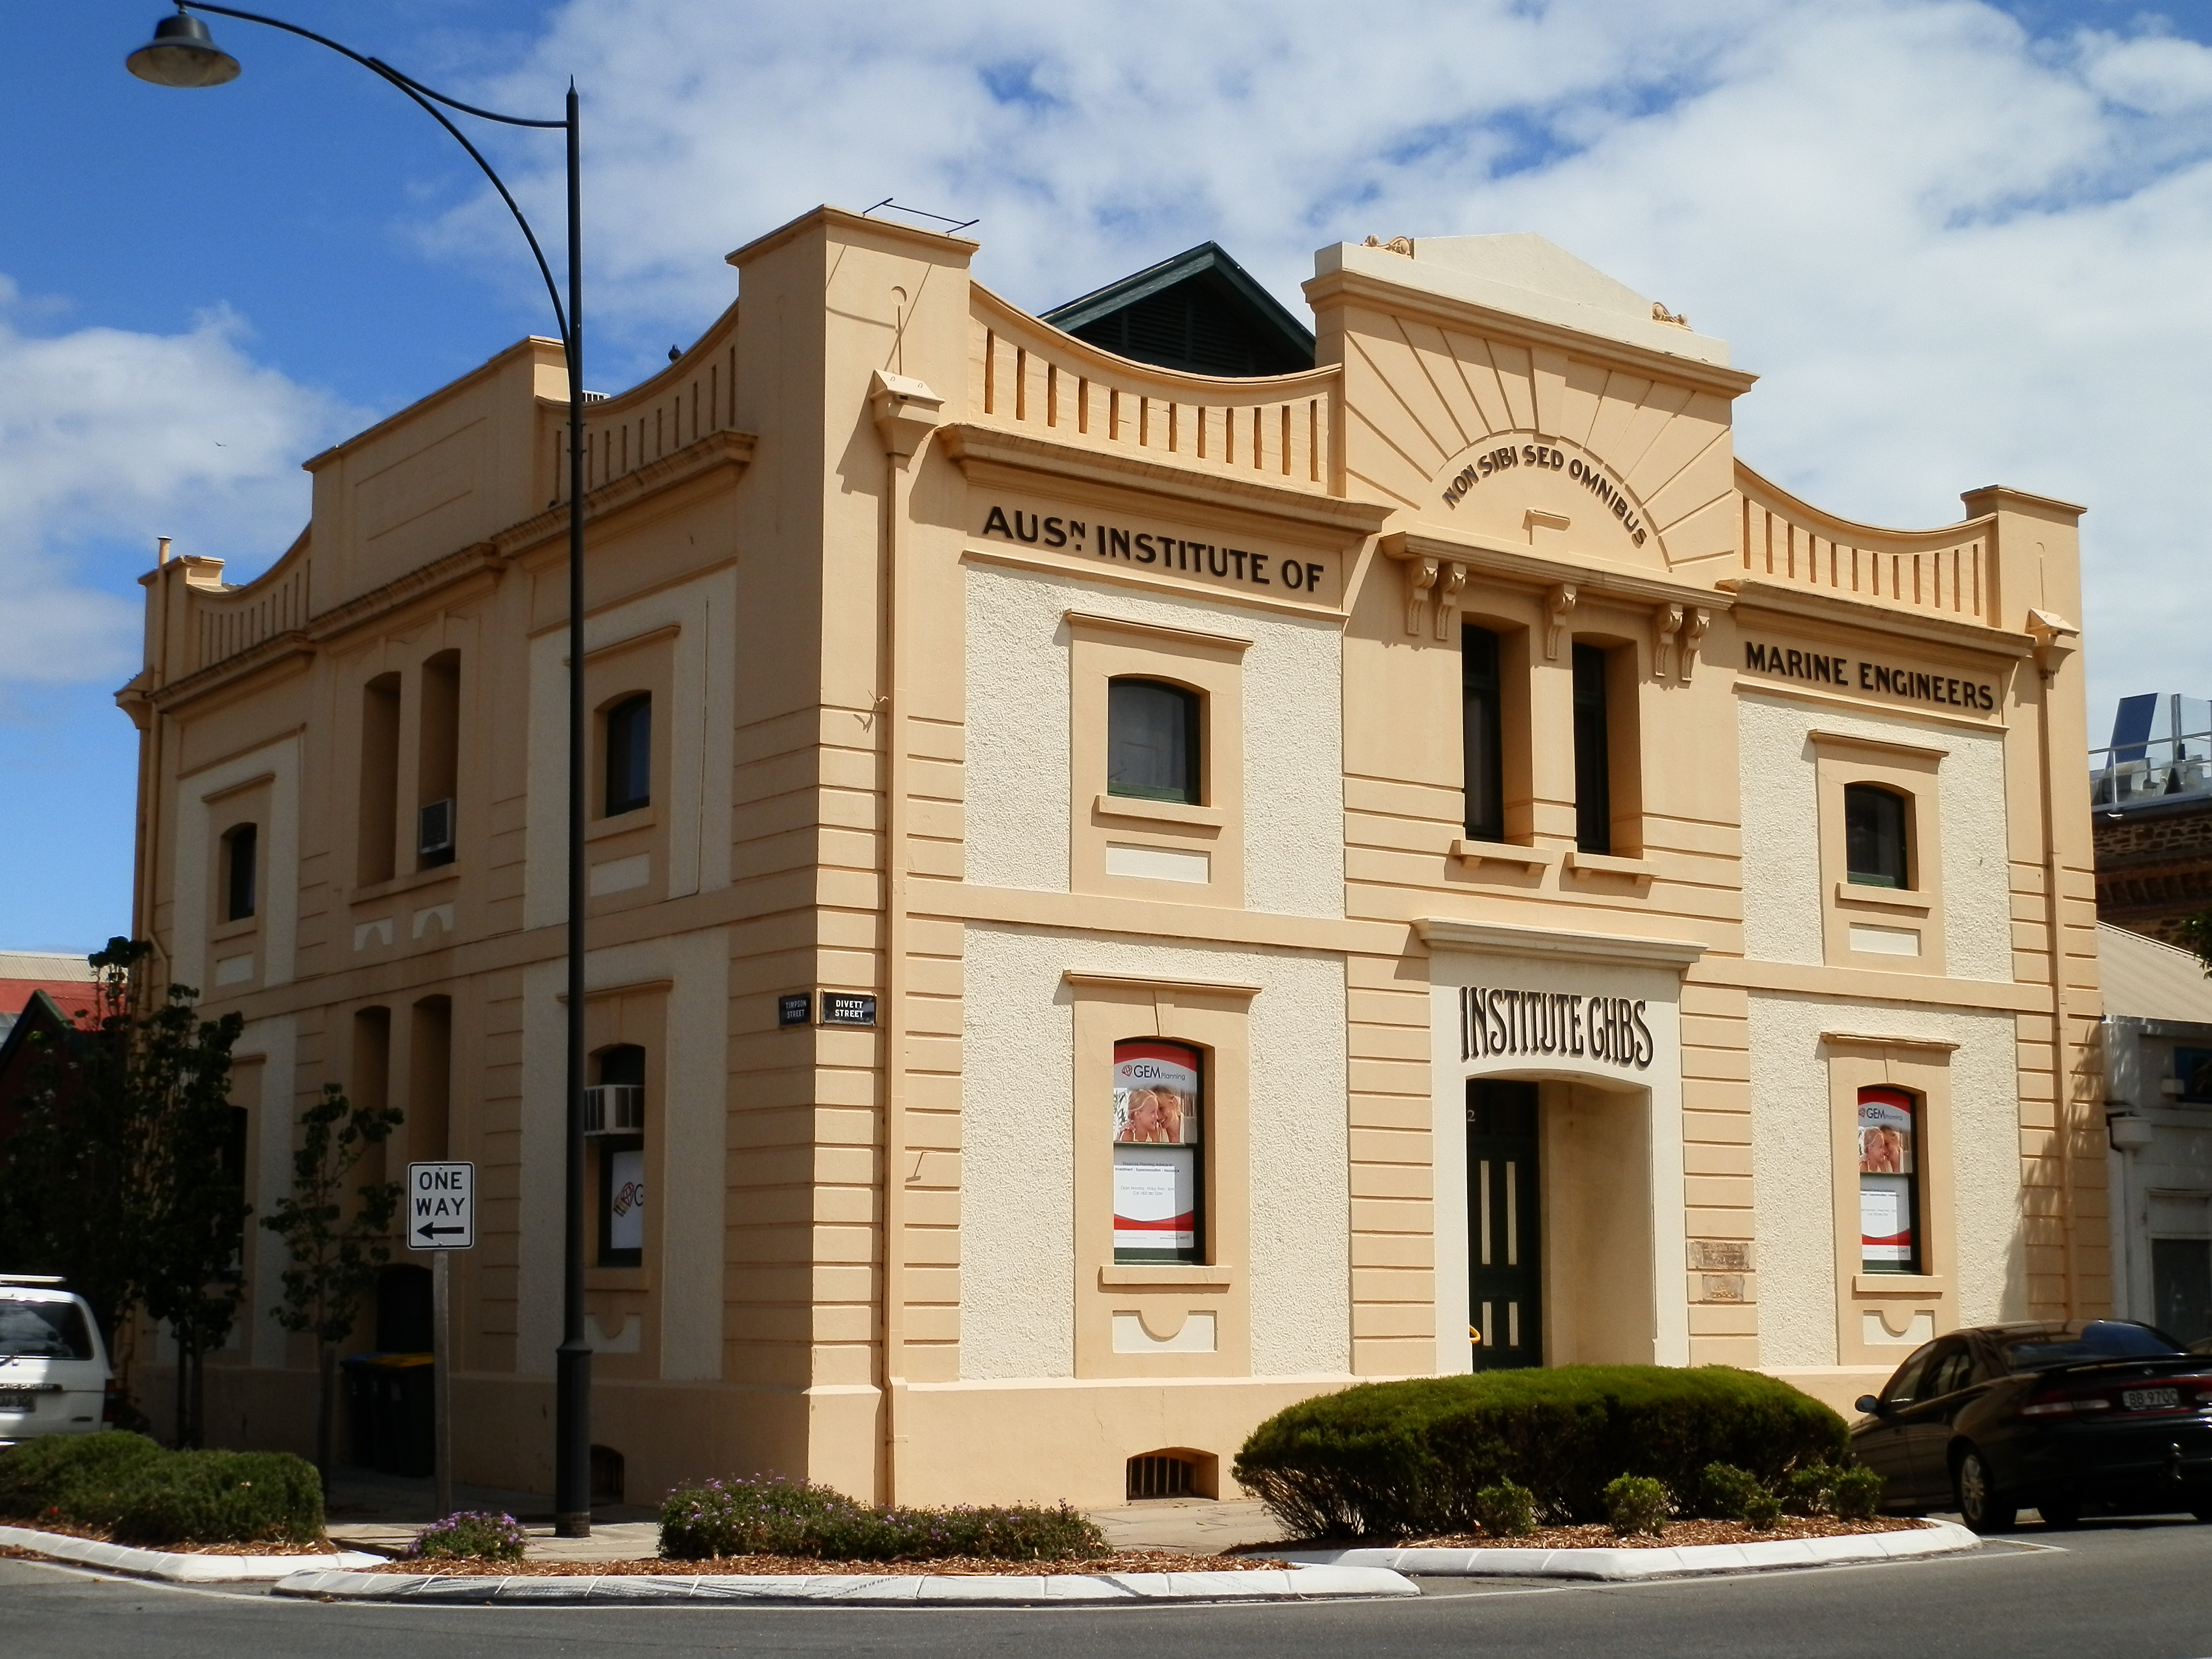 AIMPE building in Port Adelaide SA at the time of the centenary of AIMPE ownership in 2013